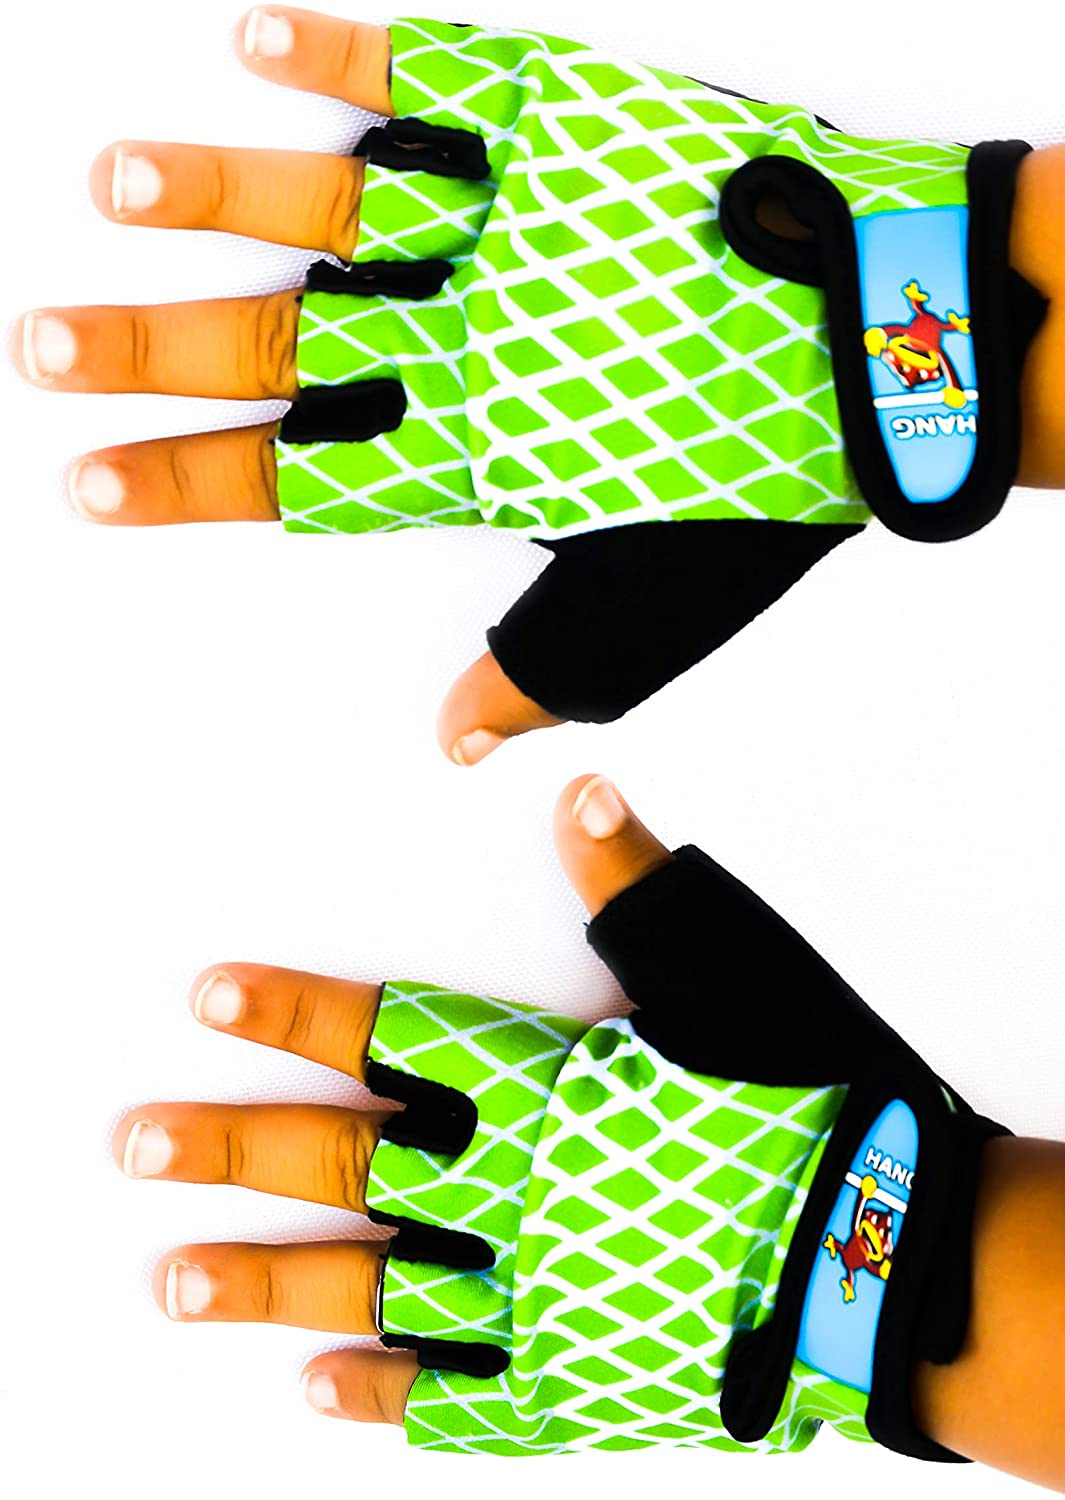 HANG Monkey Bars Gloves (5 and 6 Years Old Kids) with Grip Control